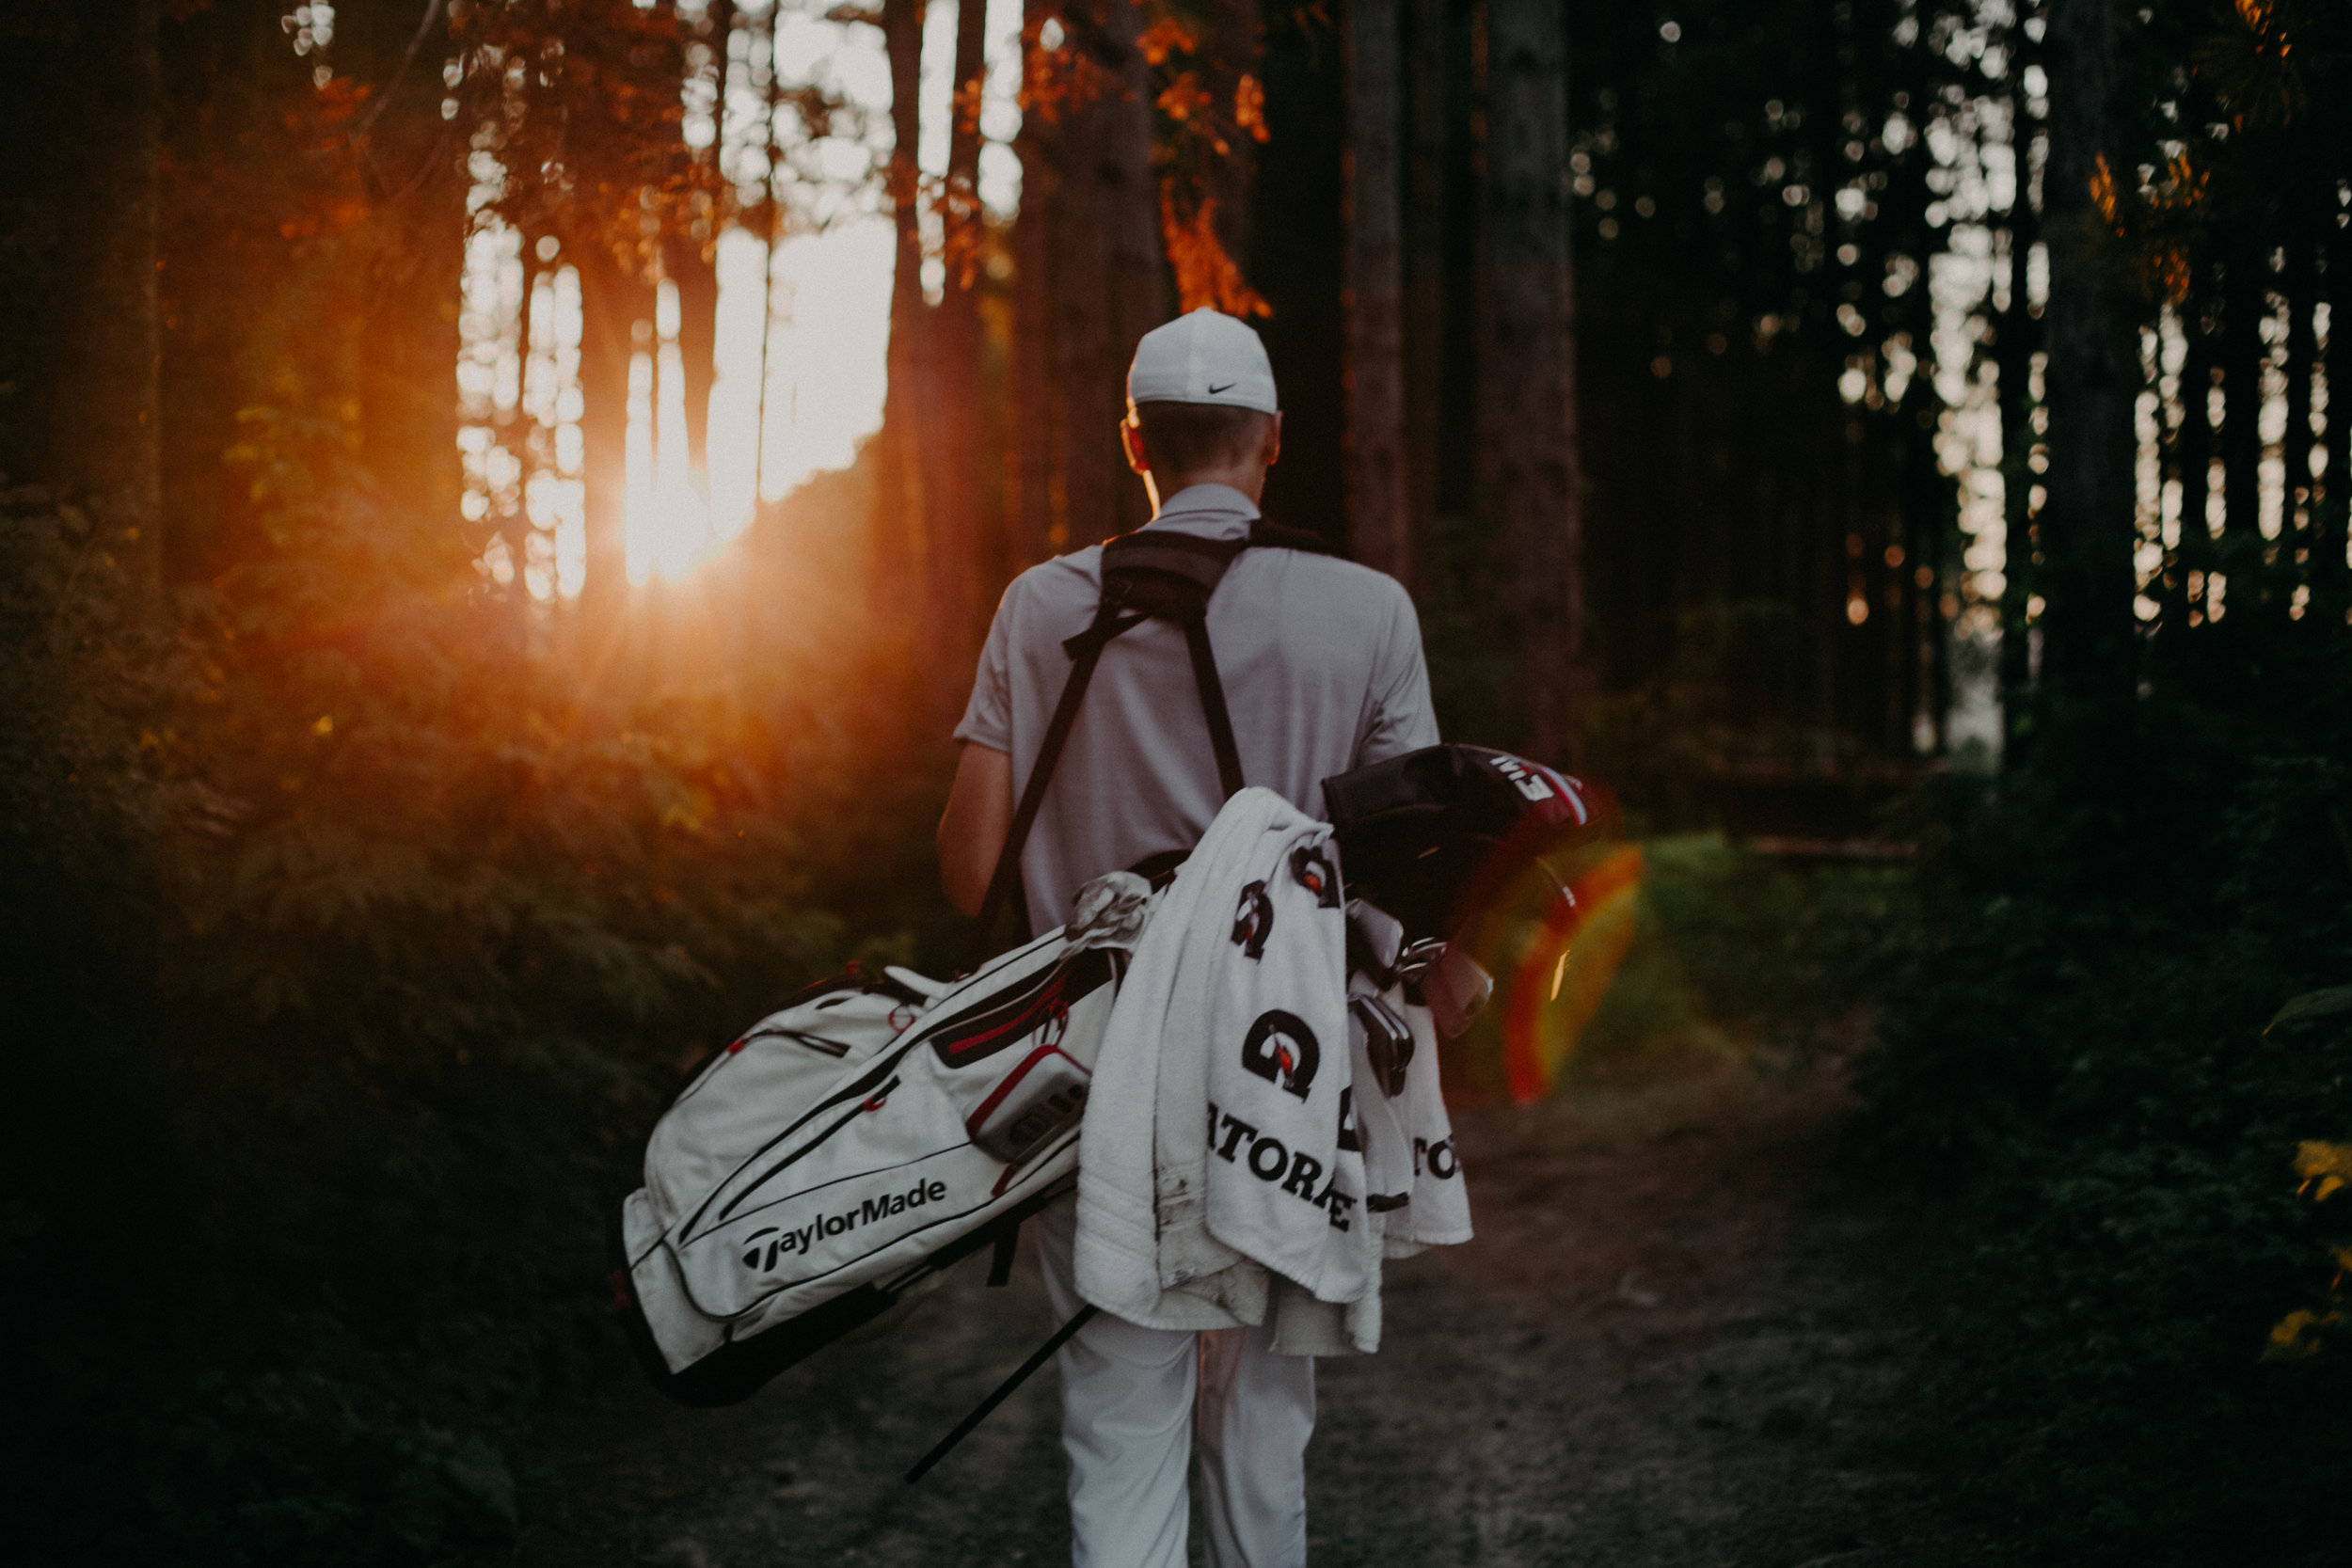 golfer carrying his clubs during sunset photo session at Spring Valley Golf Club in Wisconsin